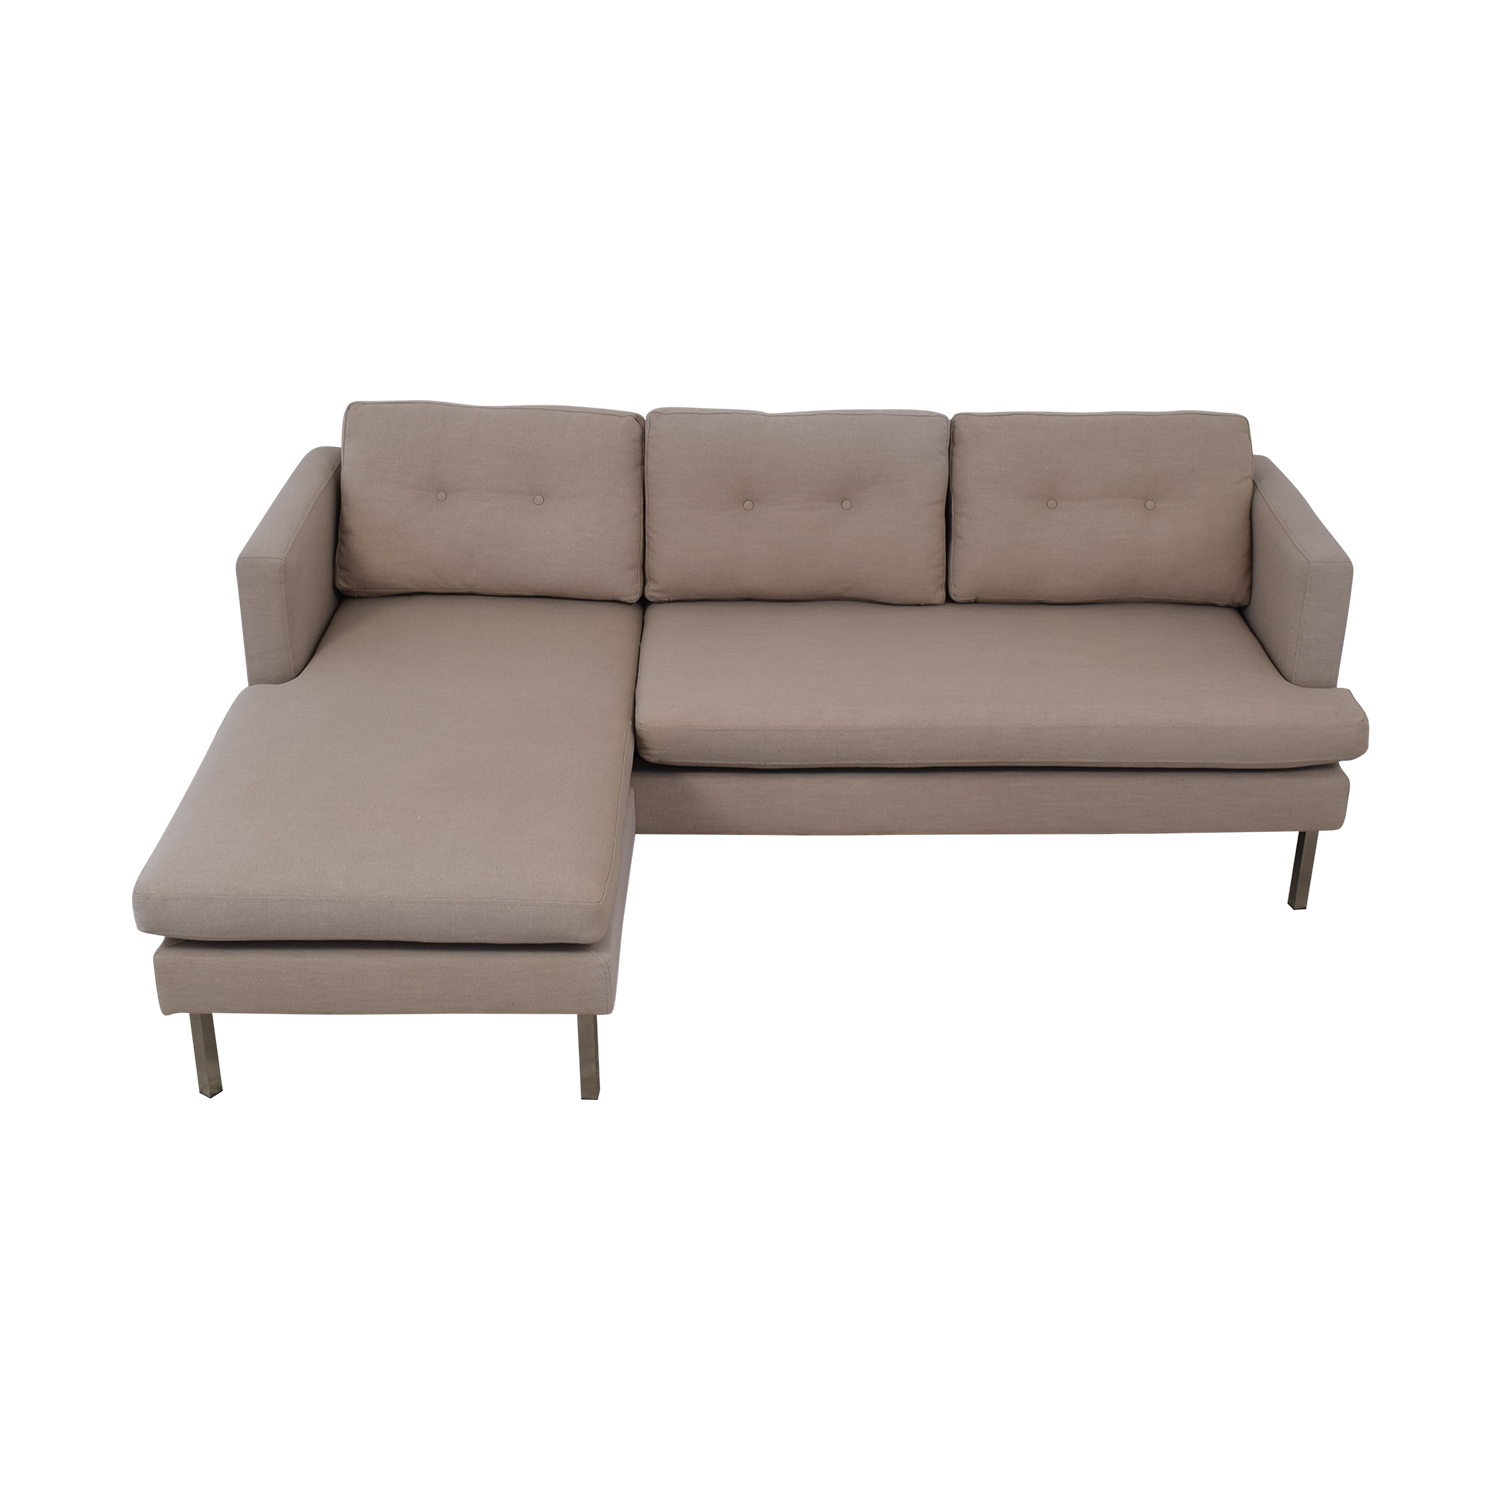 West Elm West Elm Beige Chaise Sectional for sale